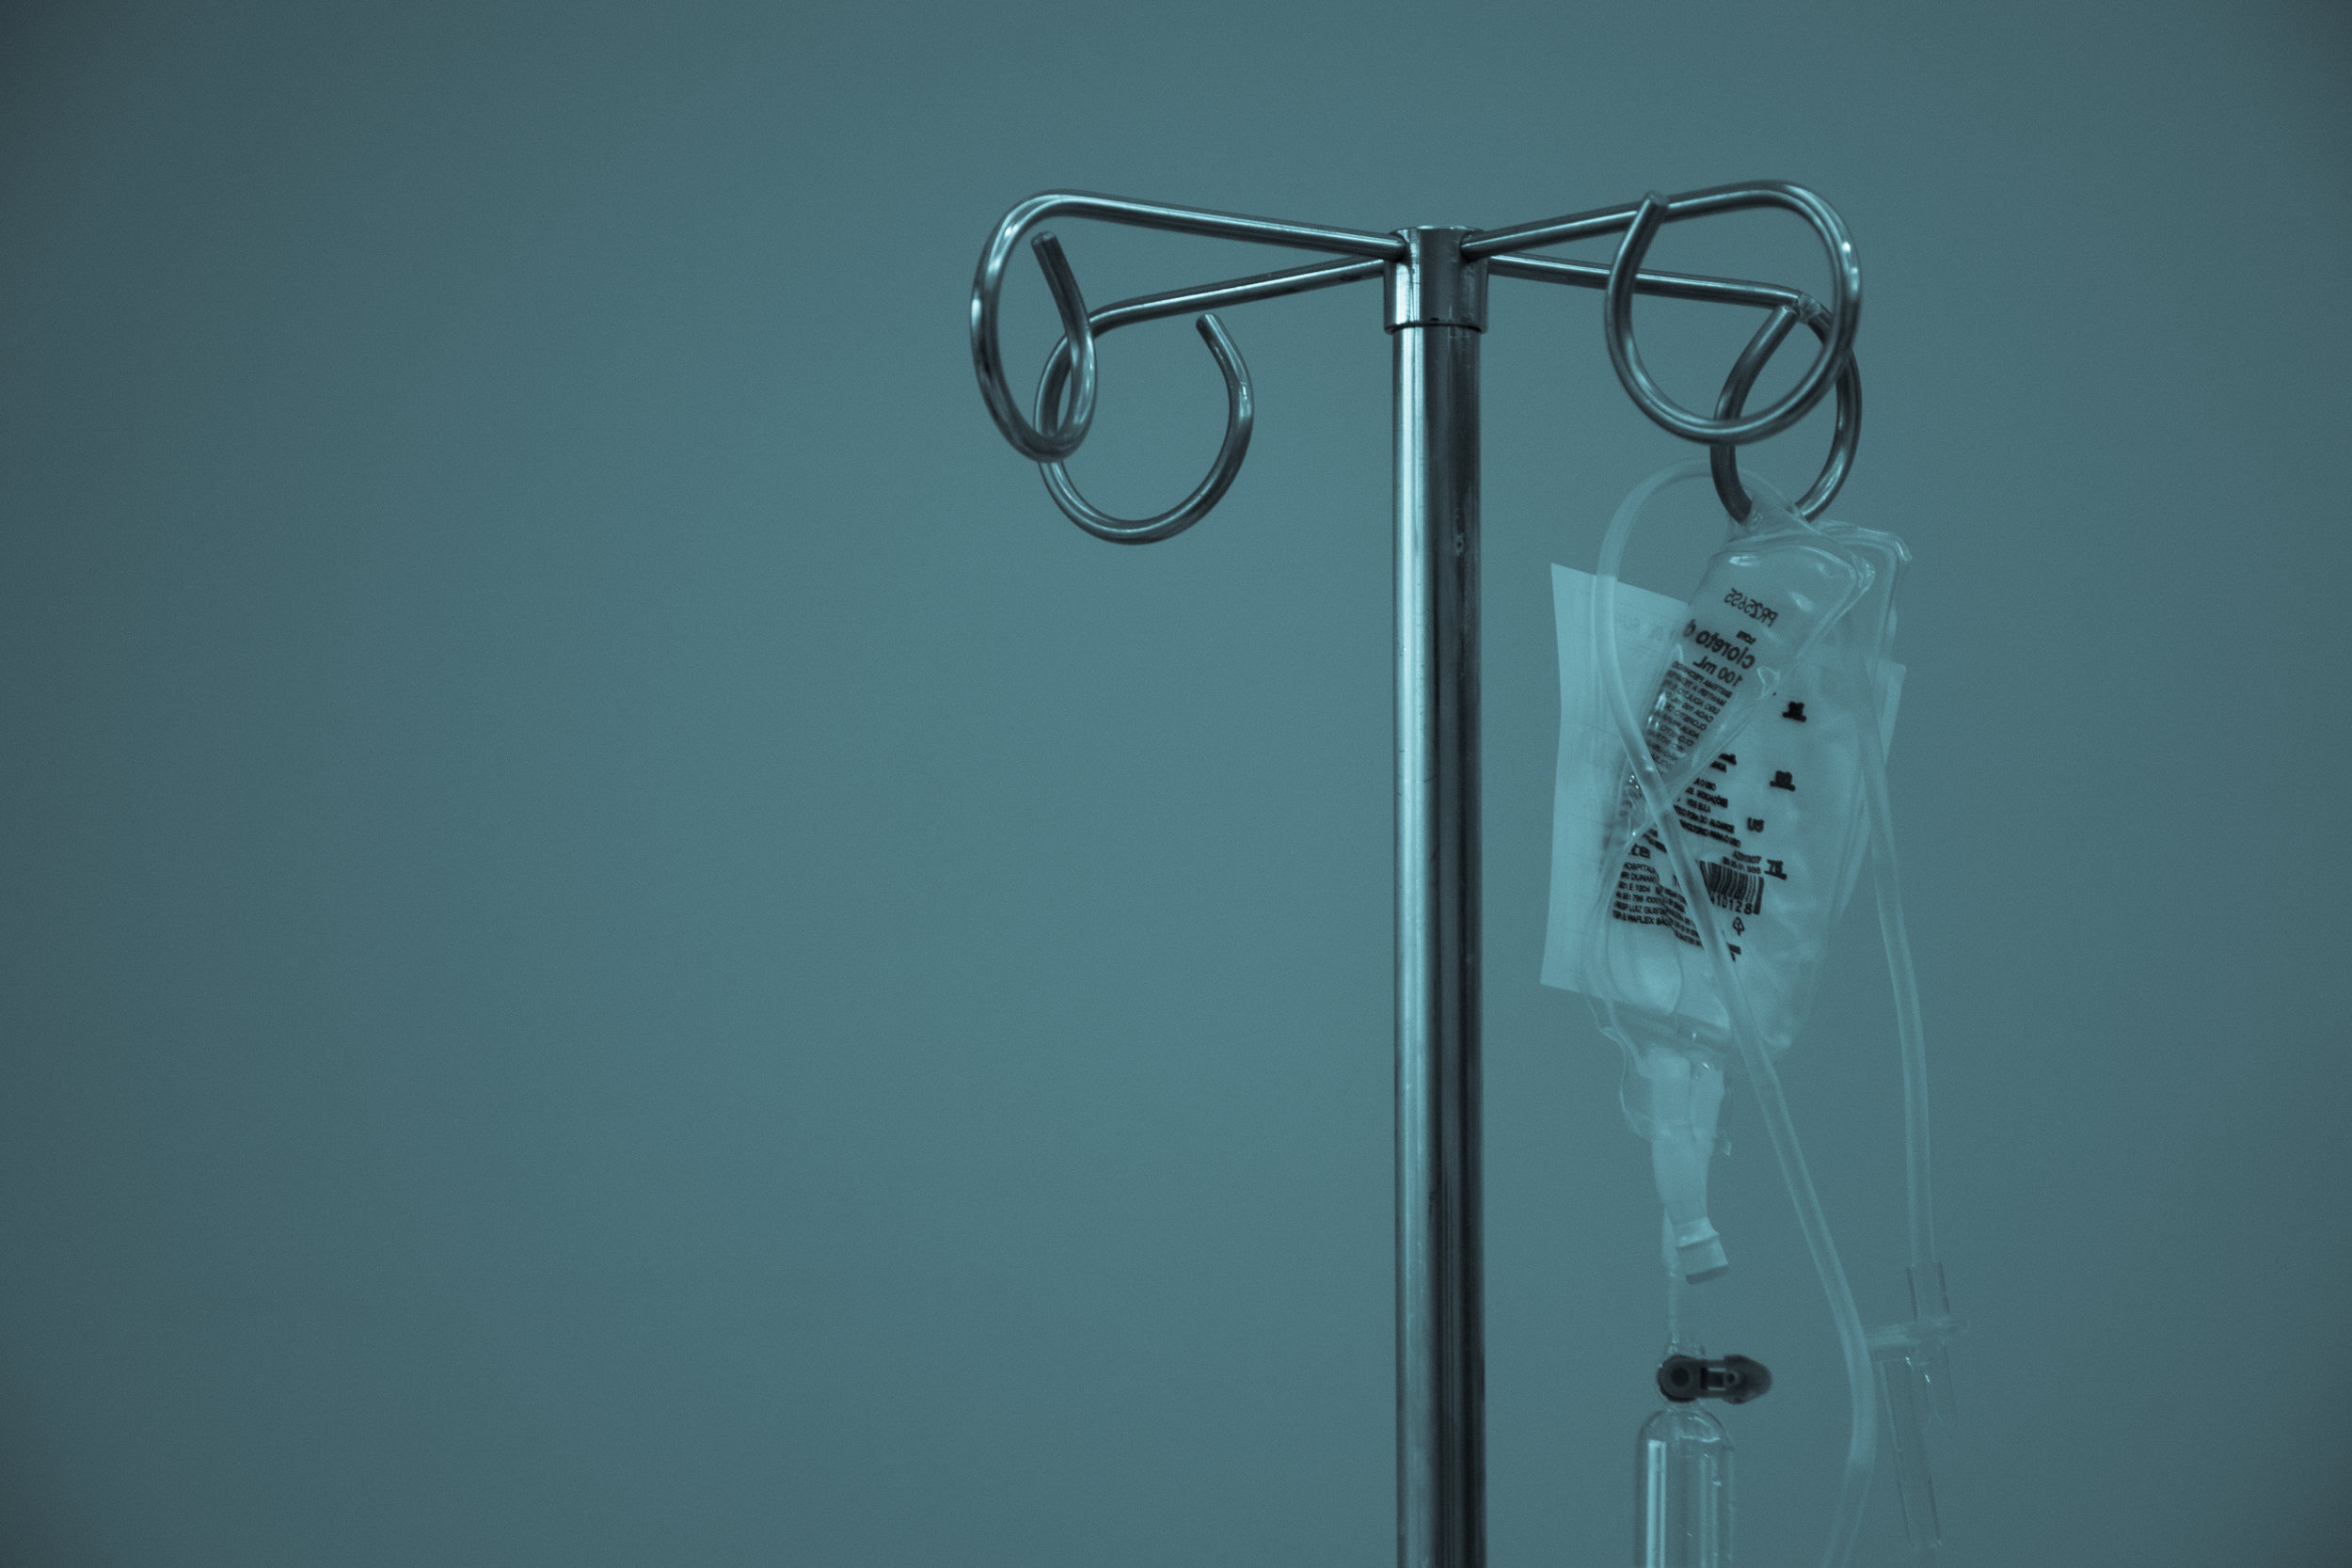 $10 million catastrophic injury settlement - past results do not guarantee future outcomes